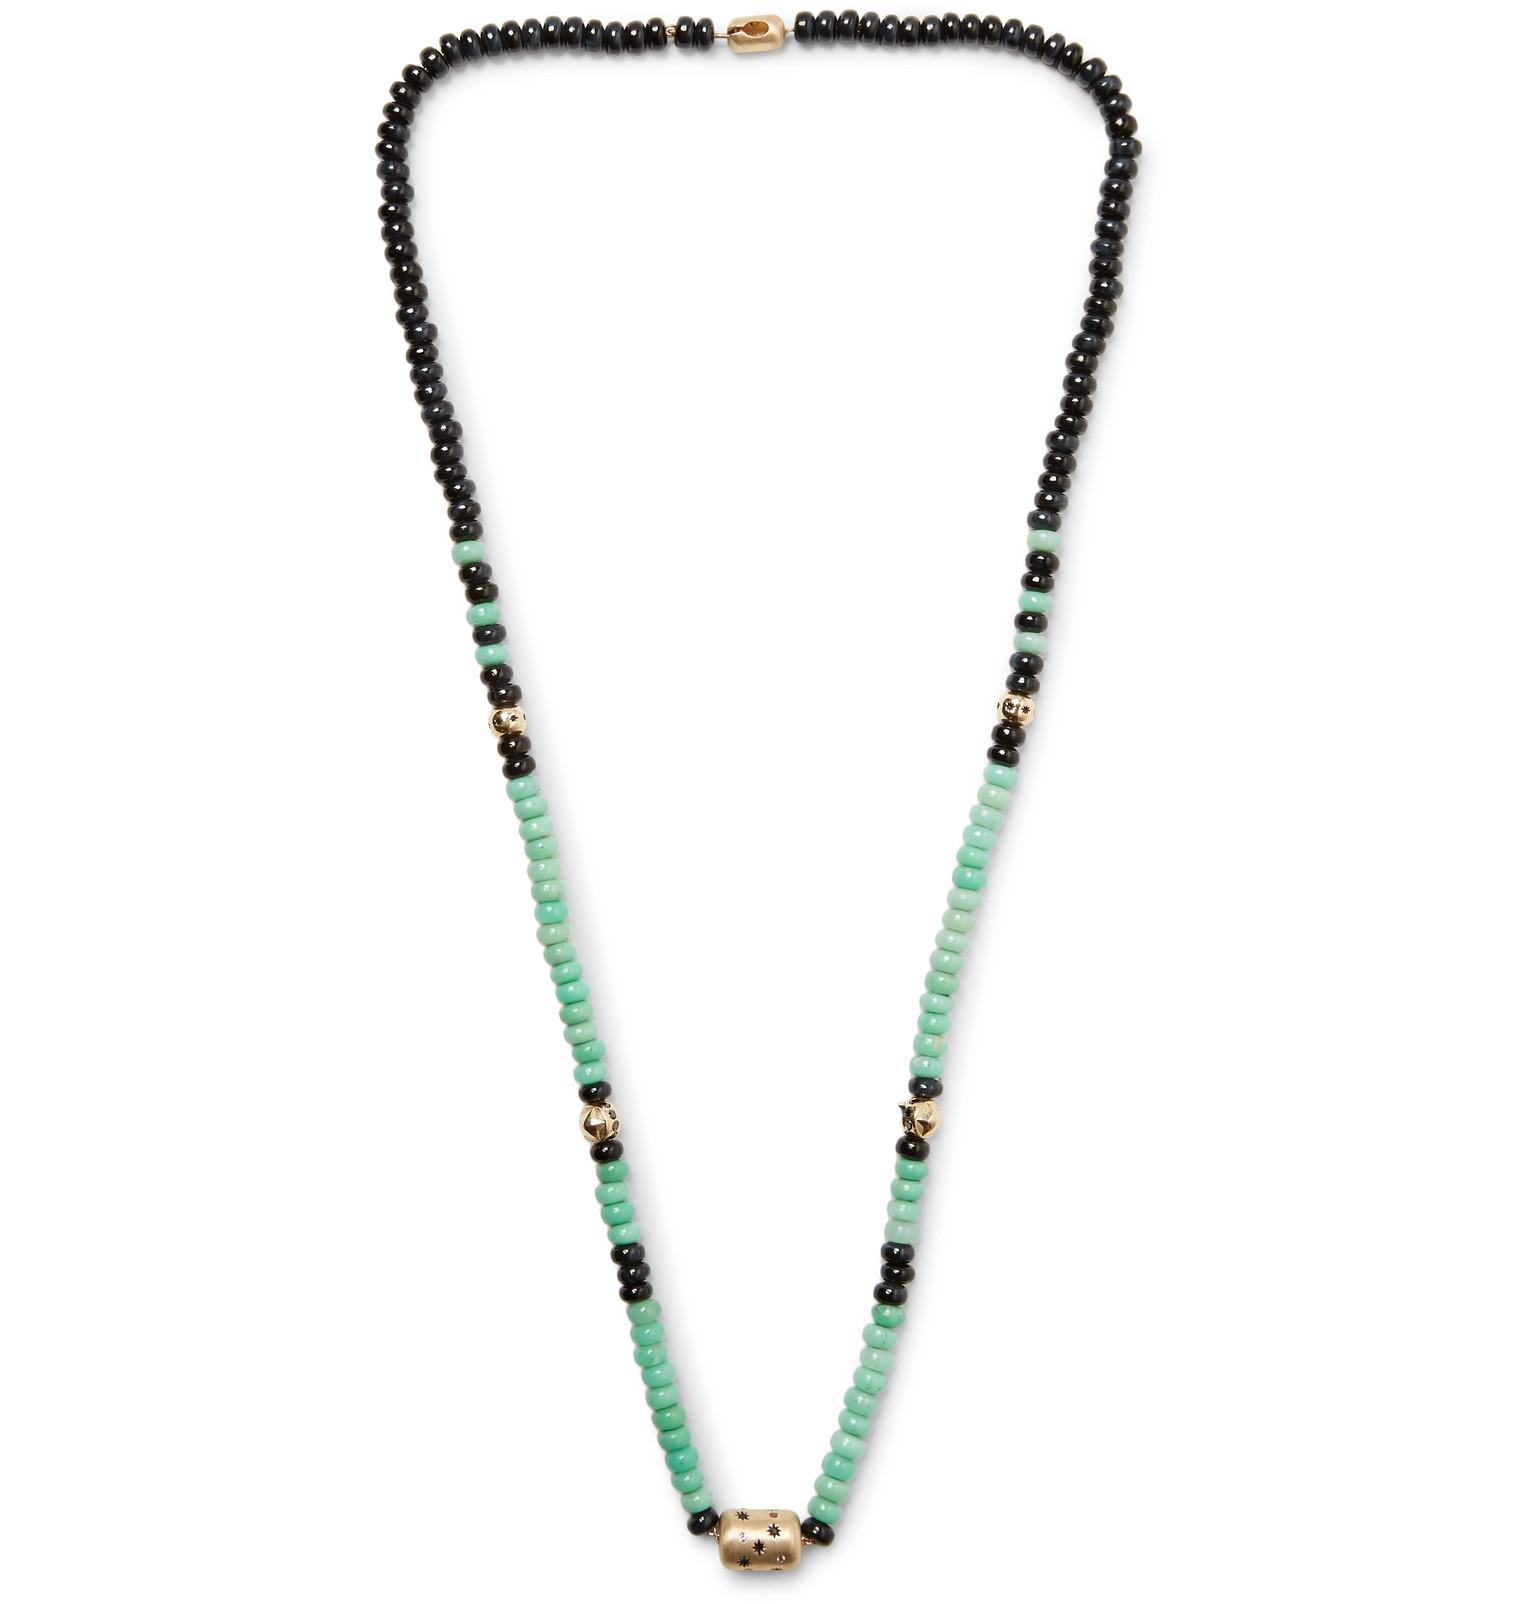 chrysoprase necklace pendulum products